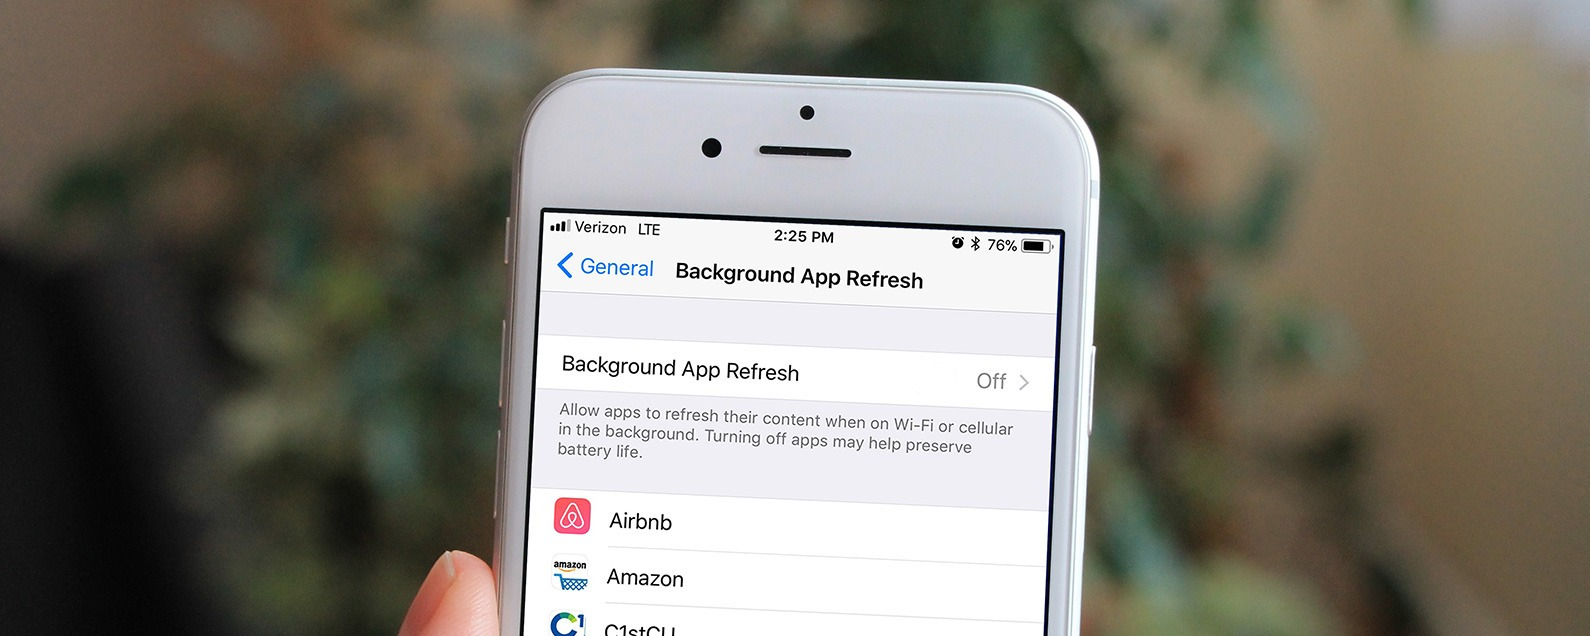 How to Set Background App Refresh to WiFi Only with iOS 11